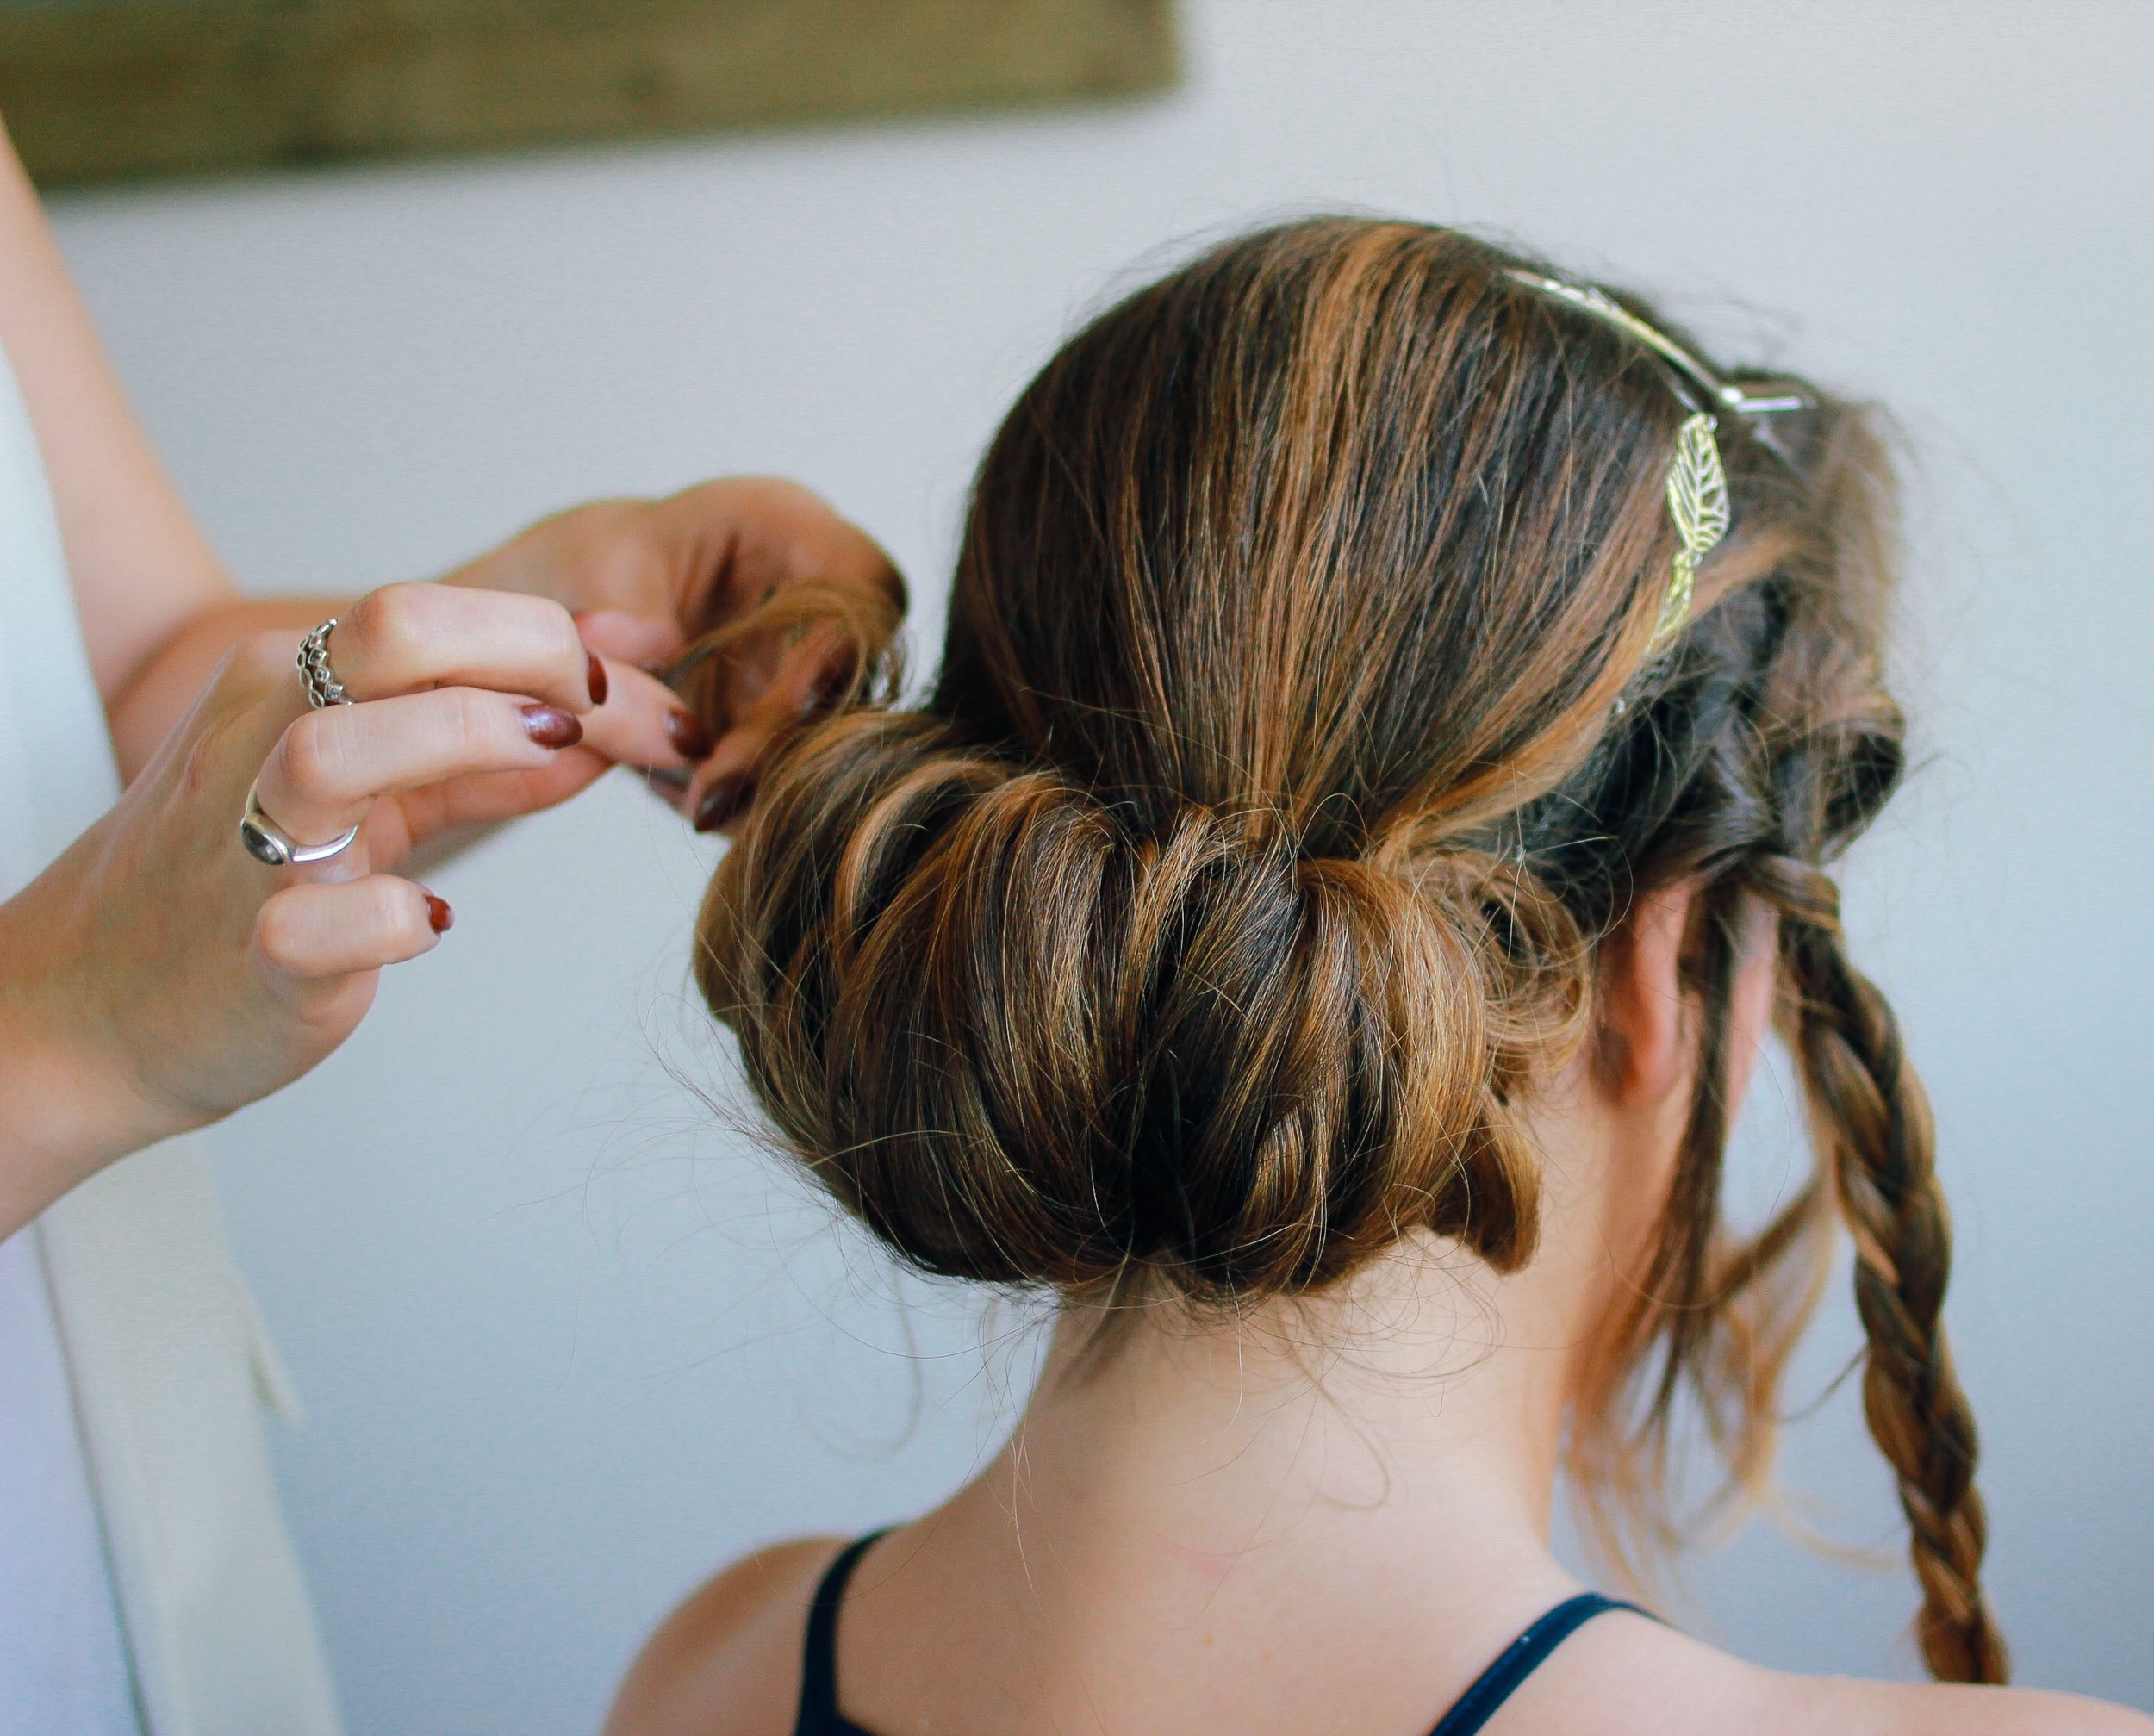 Use headband as an anchor to help the bobby pins secure.